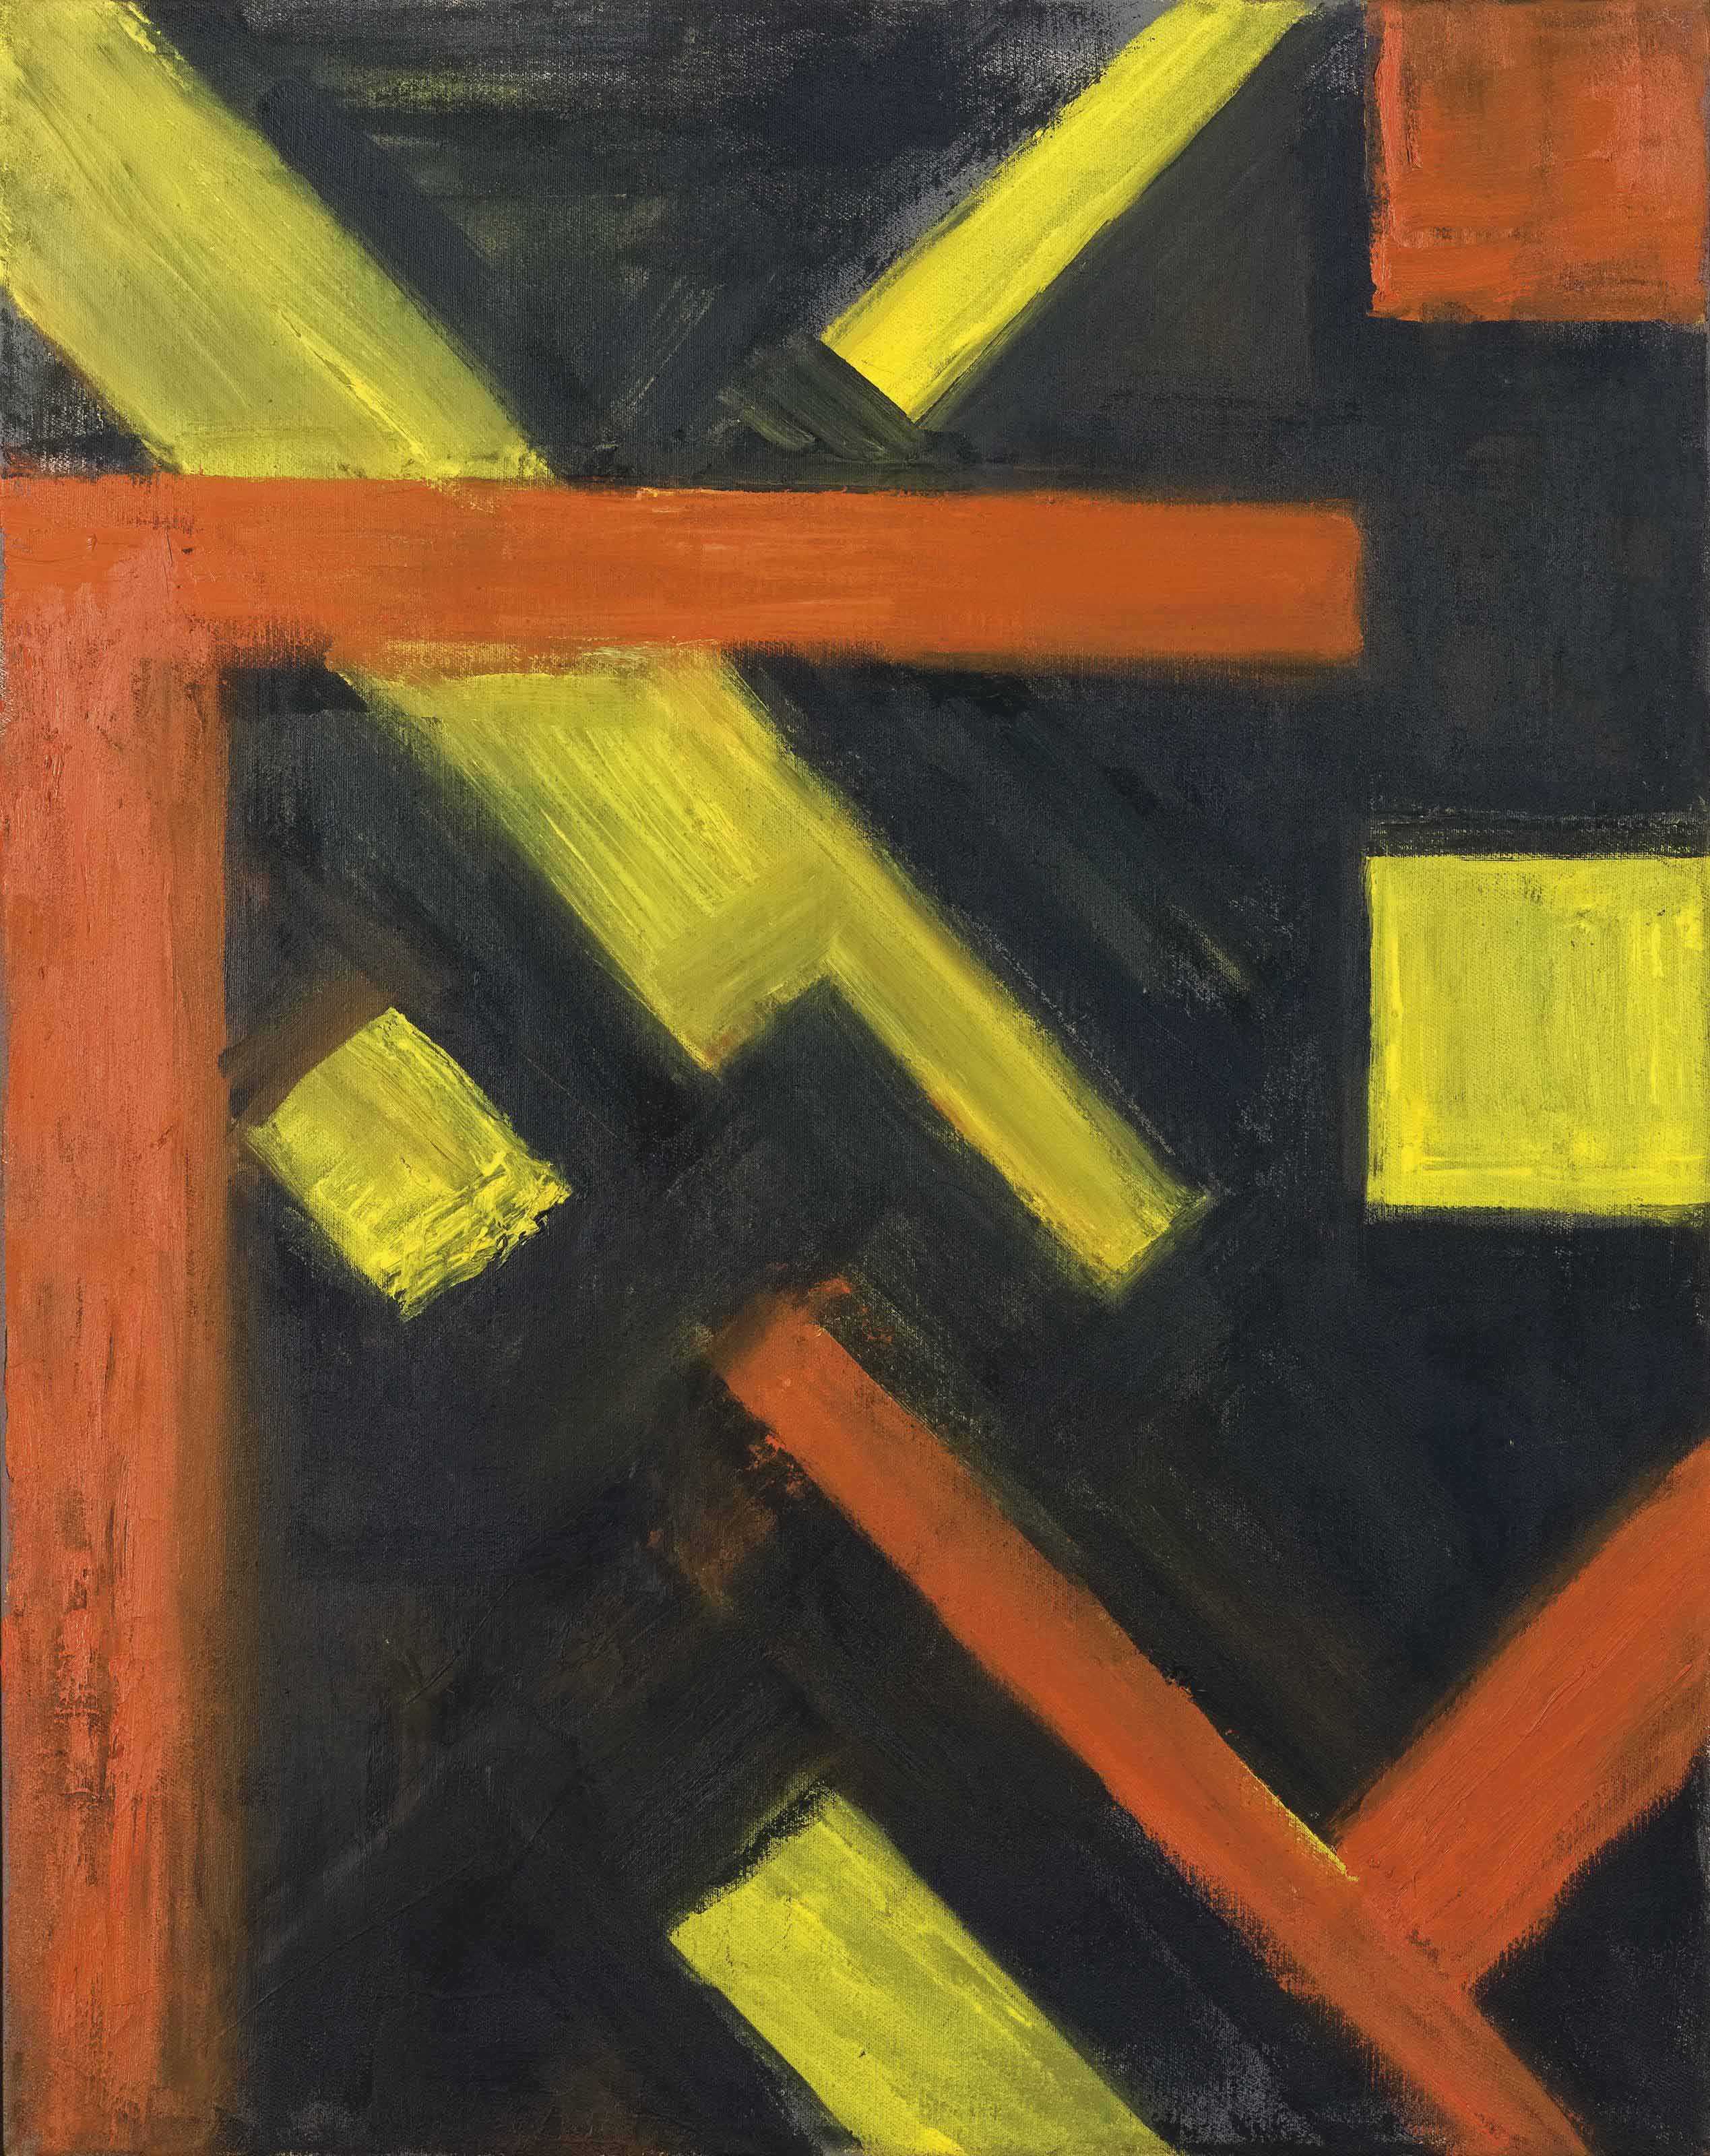 Geometrical work in yellow, red & black